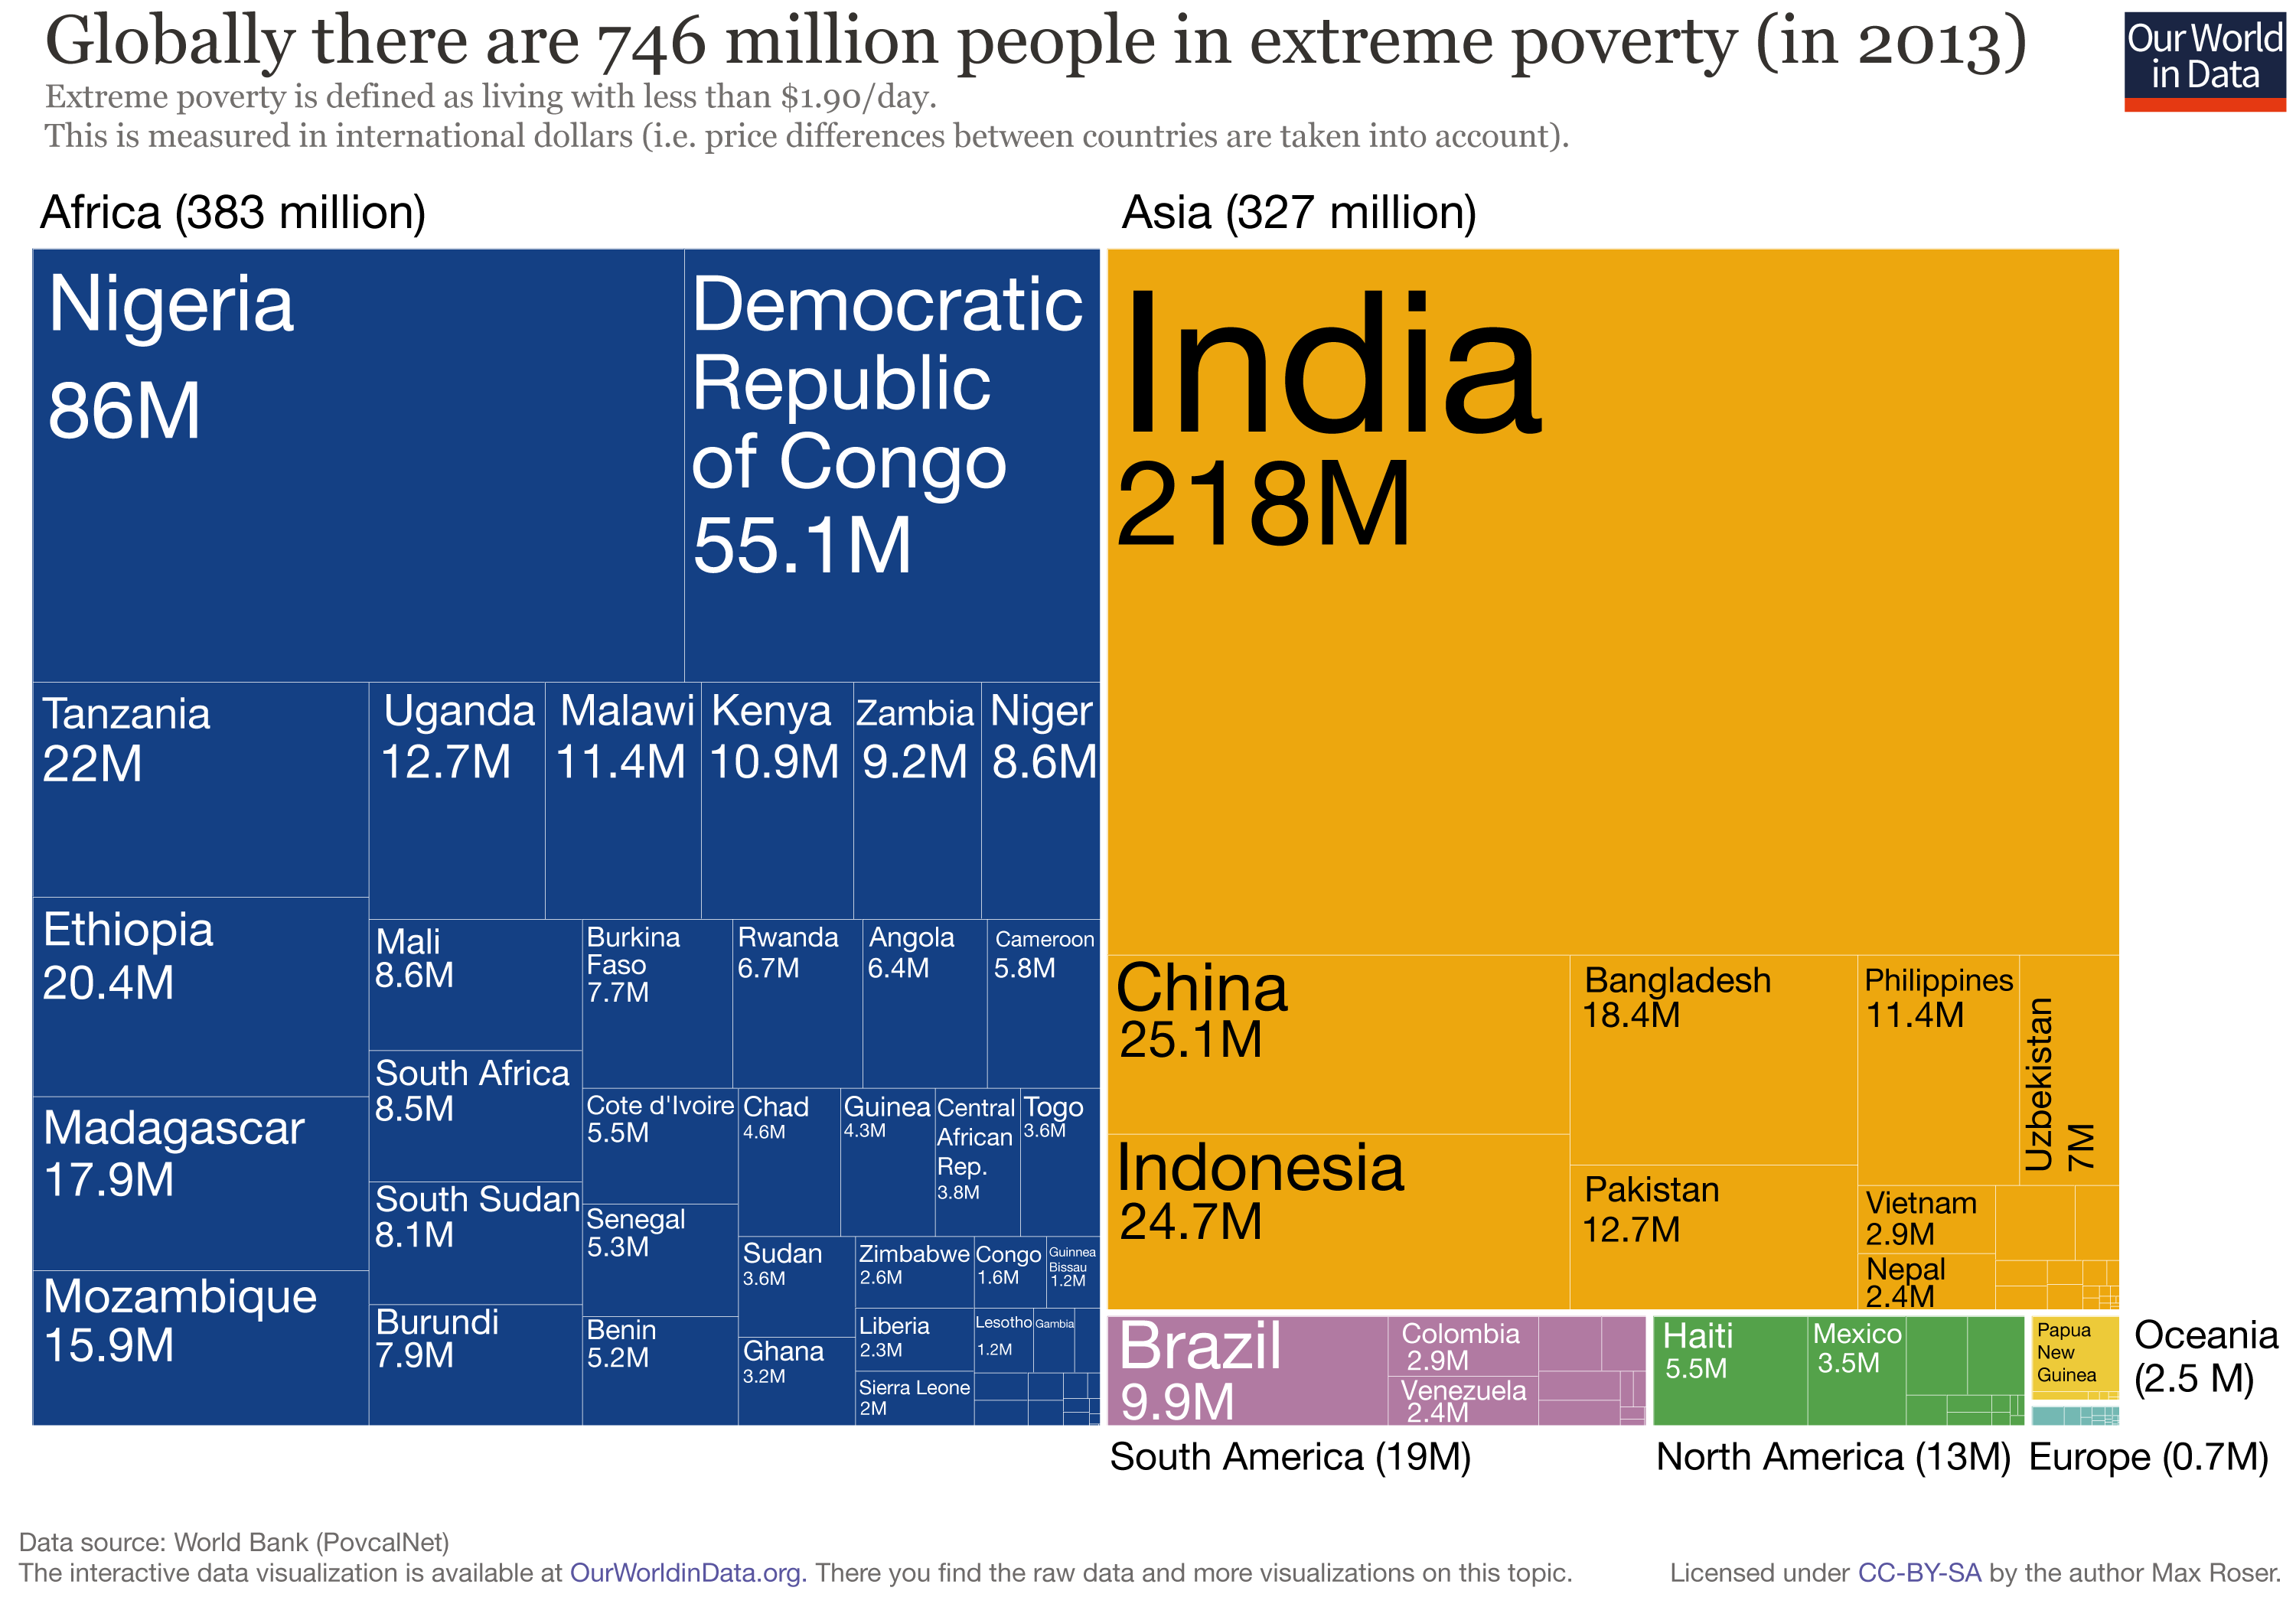 Tree Map of Extreme Poverty distribution